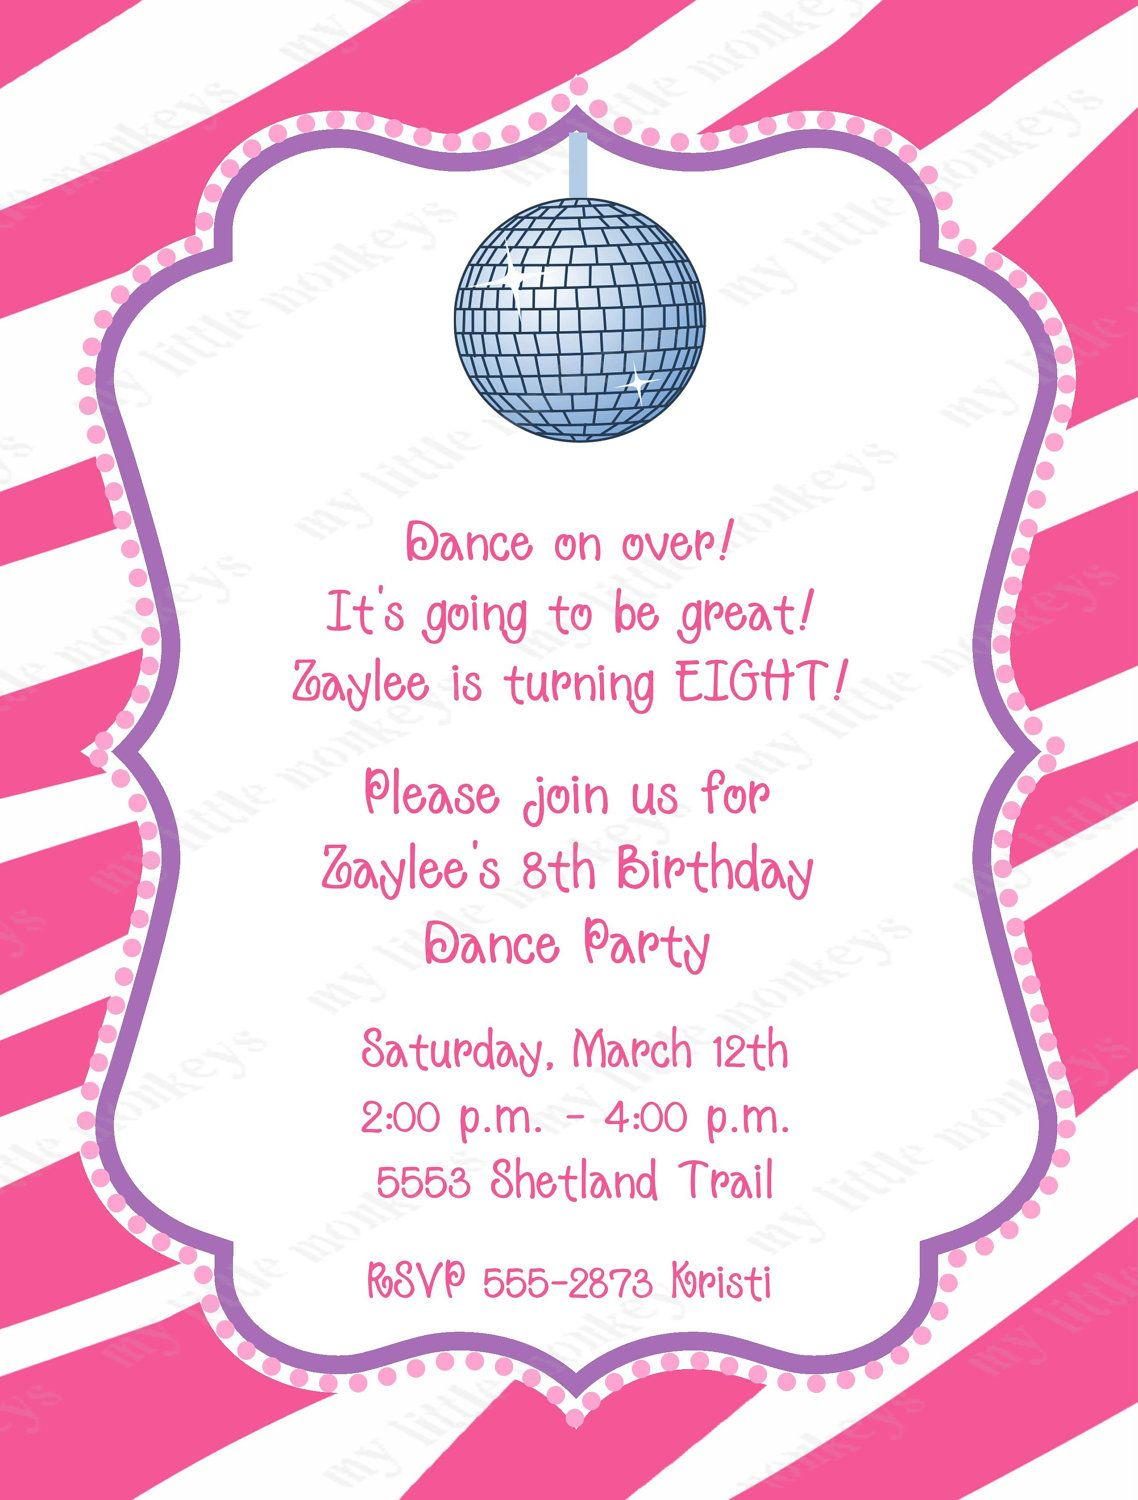 10 Dance Disco Birthday Party Invitations with Envelopes. Free ...